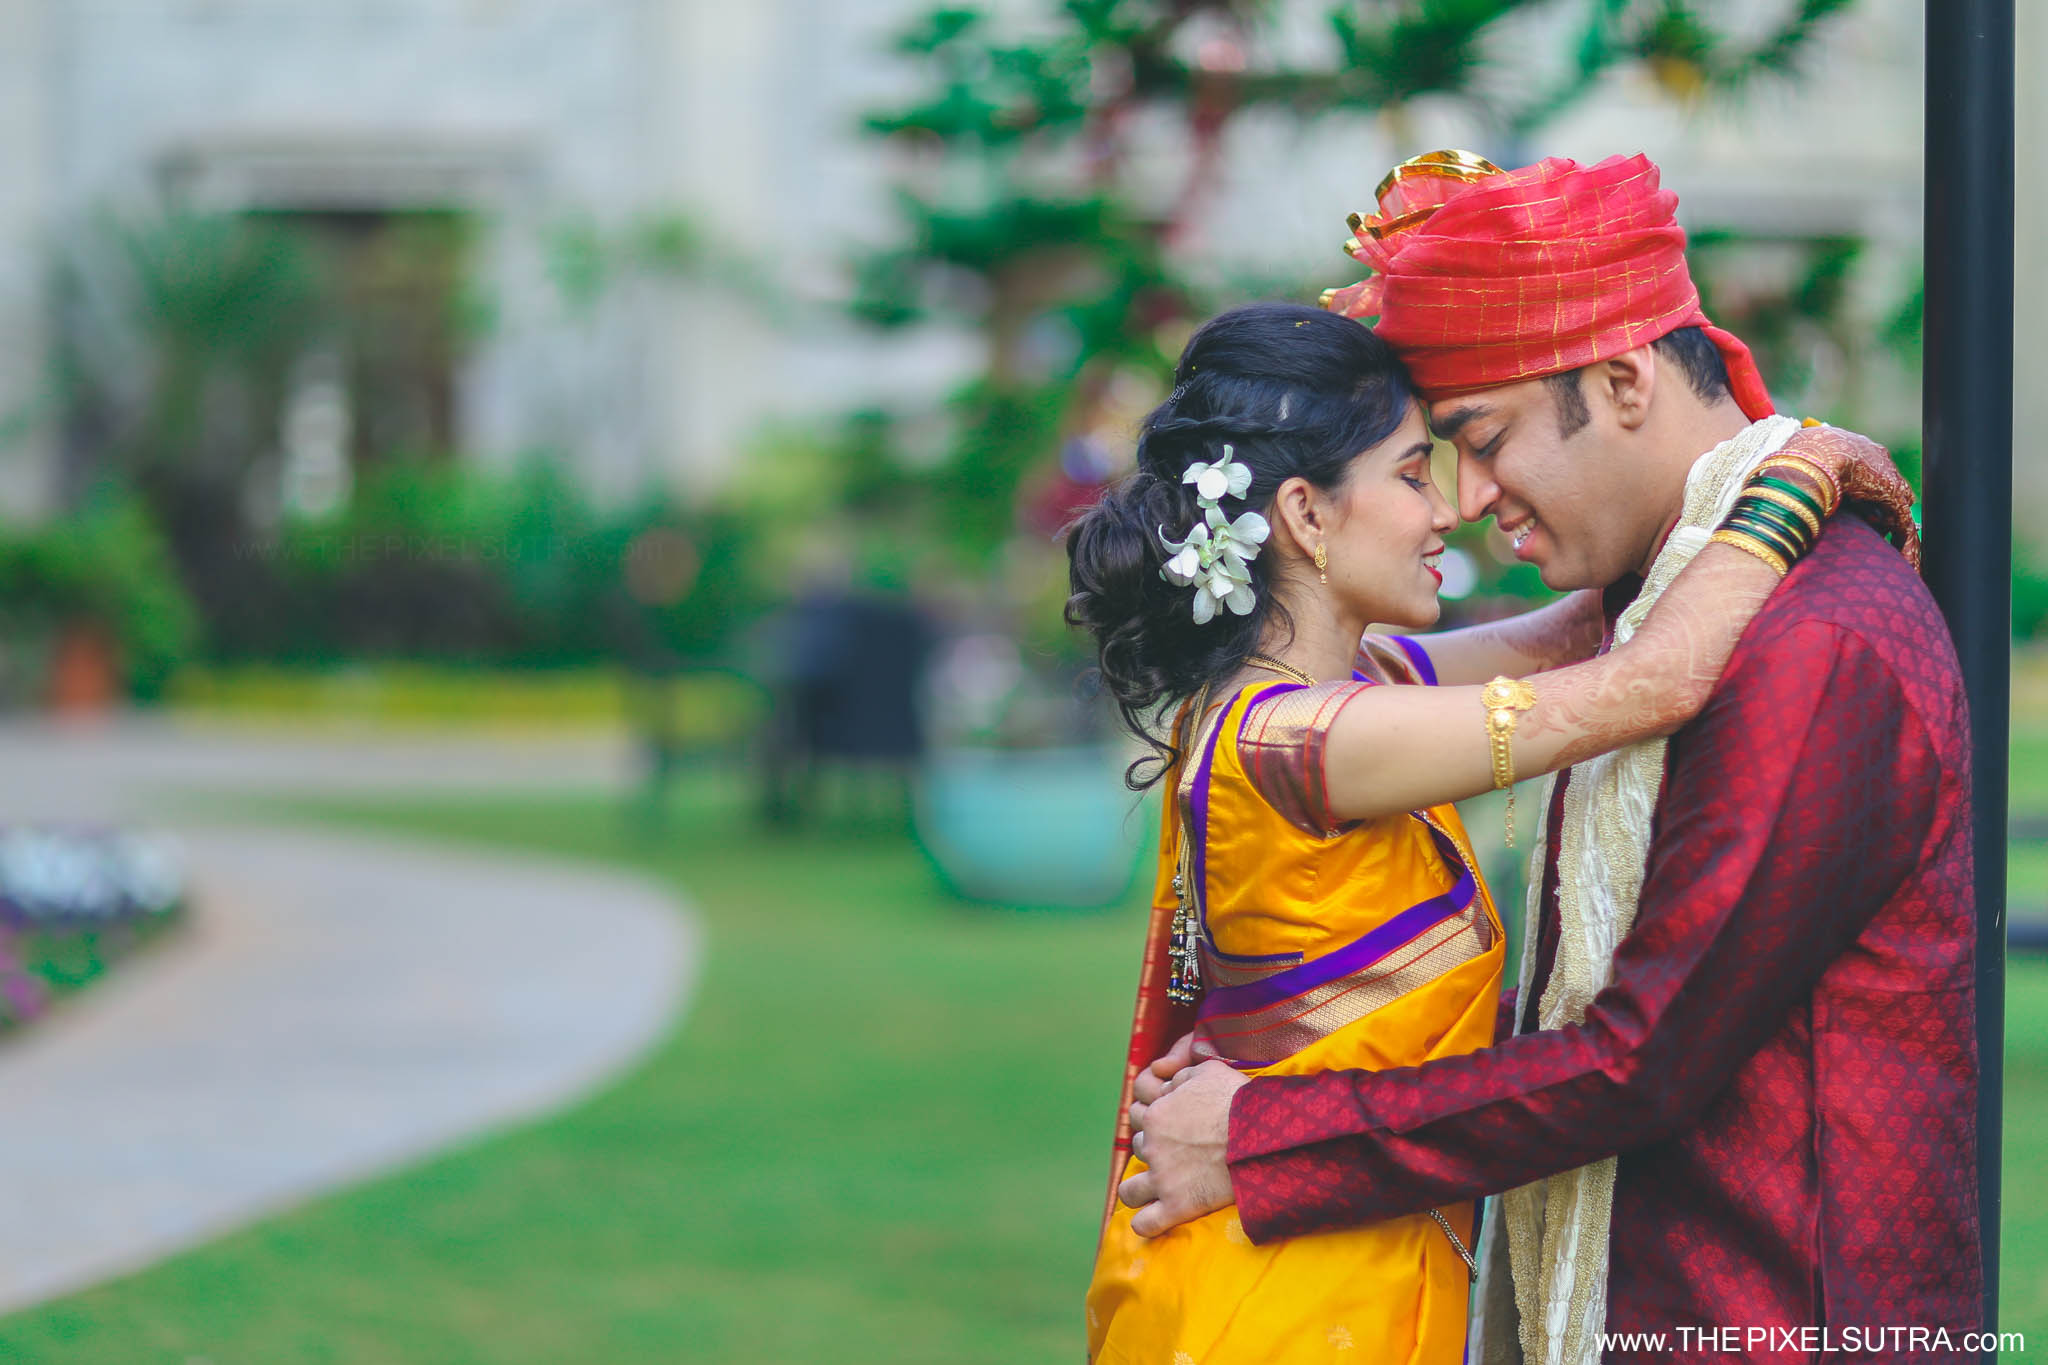 The Pixel Sutra Nachiket x Priyanka Candid Wedding photographer Mumbai Best  (49).jpg